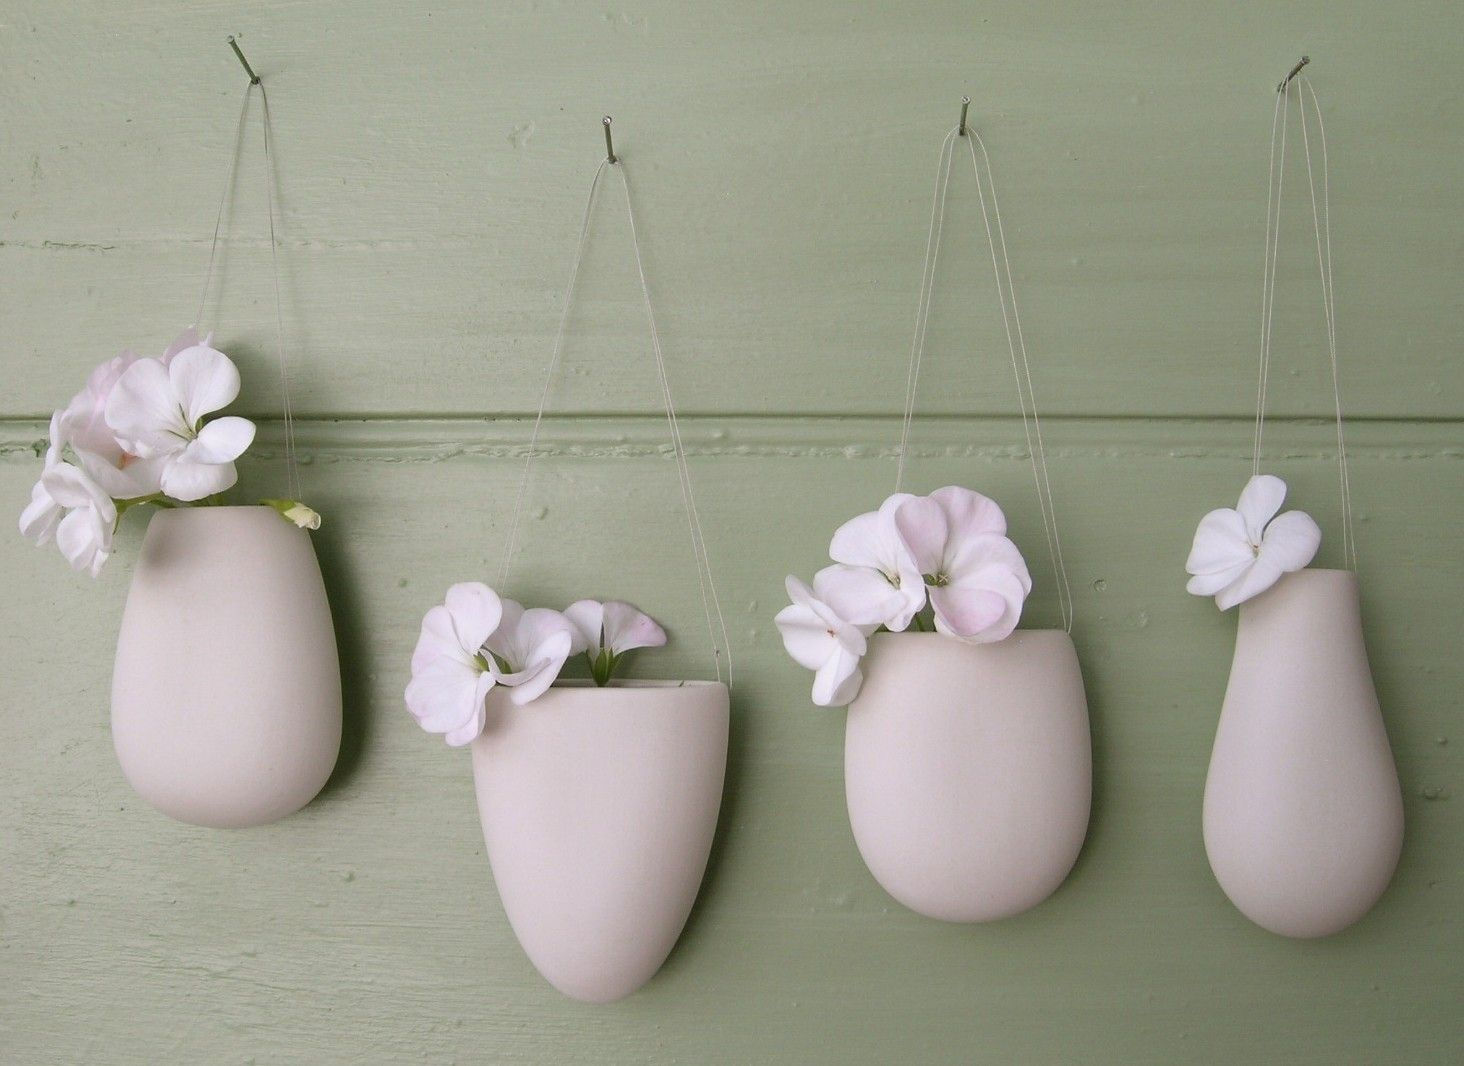 Wall vases for flowers - Lovely Vases With Flowers